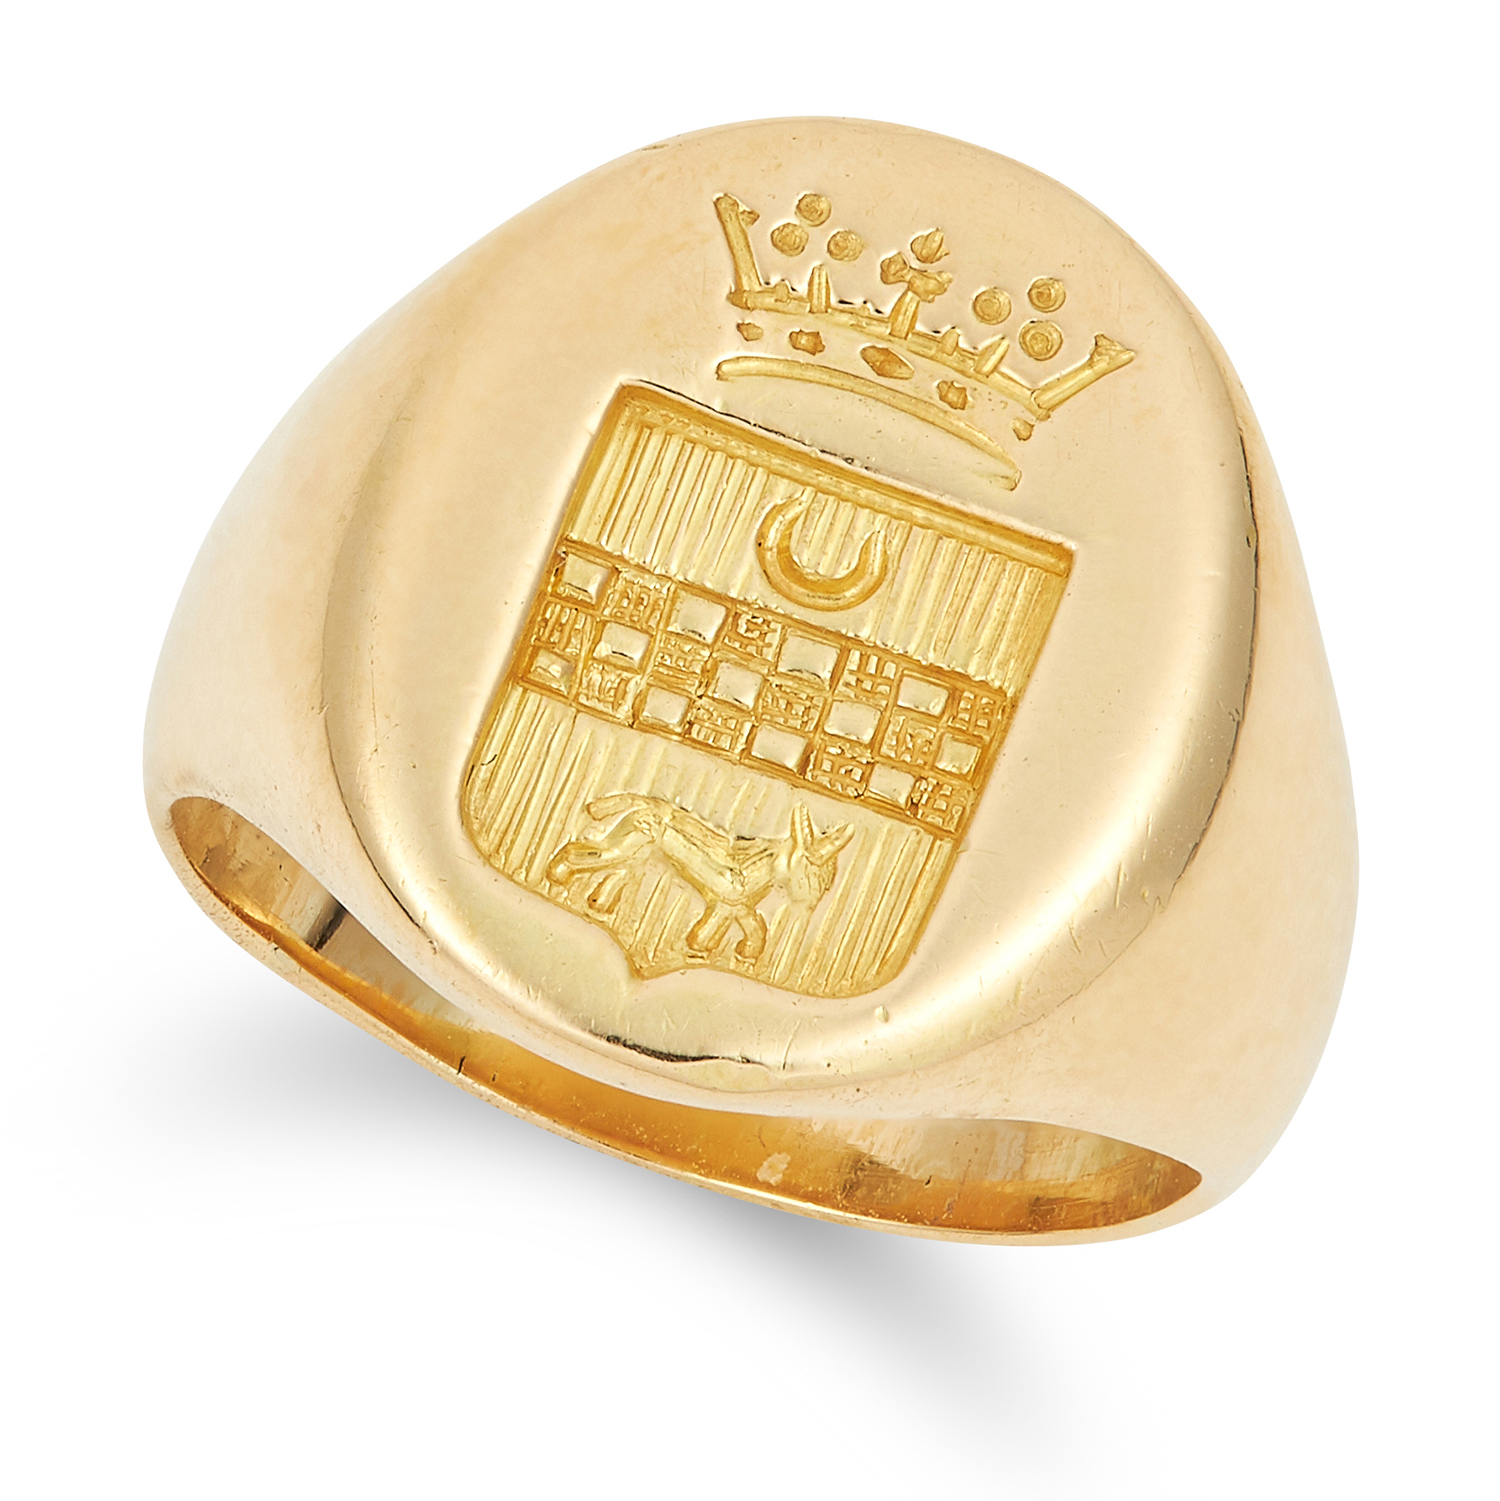 Los 43 - ANTIQUE INTAGLIO SEAL SIGNET RING with engraved heraldic crest, size H / 3.5, 8.0g.